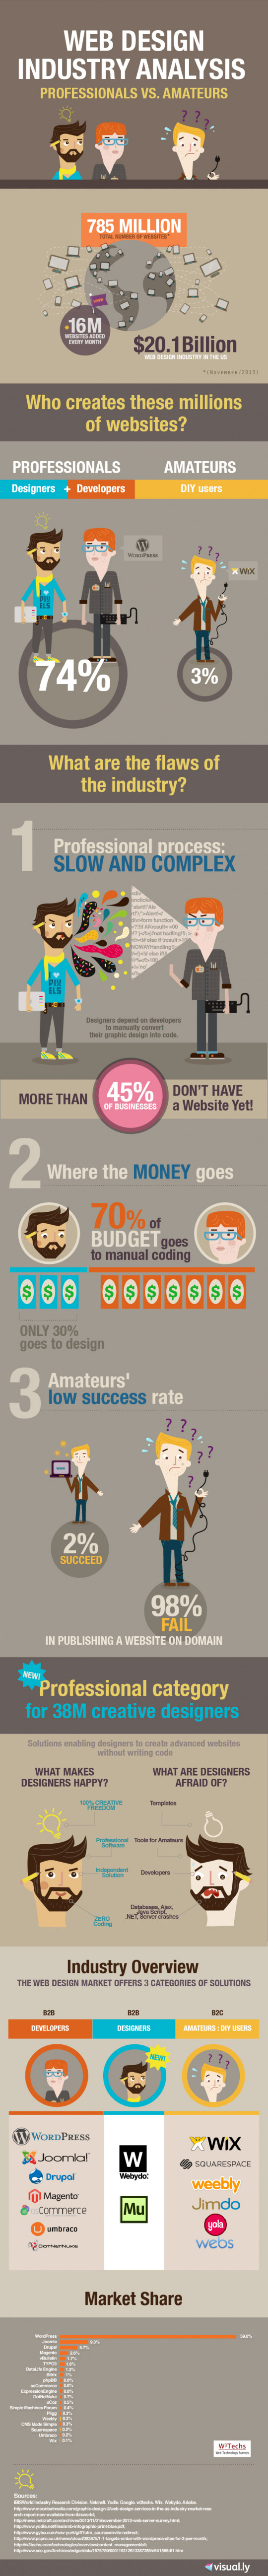 Web Design Industry Analysis: Professionals vs. Amateurs